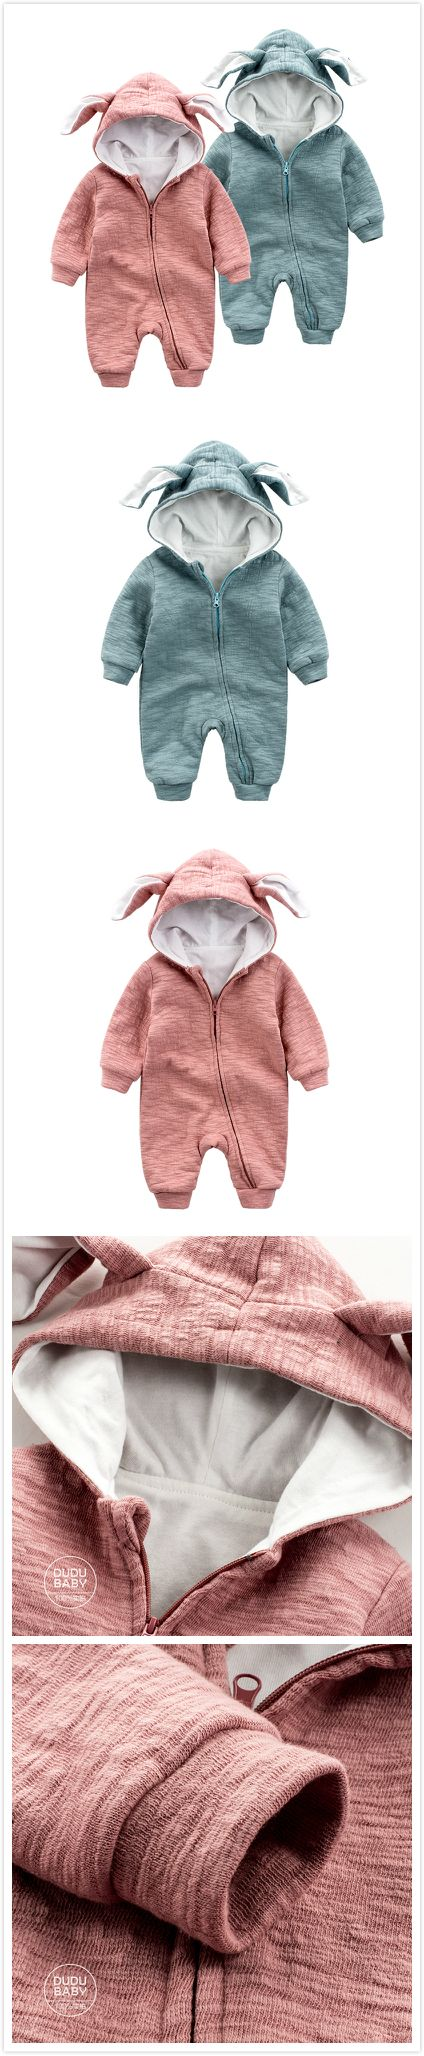 Infant Baby Unisex Hooded Winter Clothes Jumpsuit Long Sleeve 2 Color